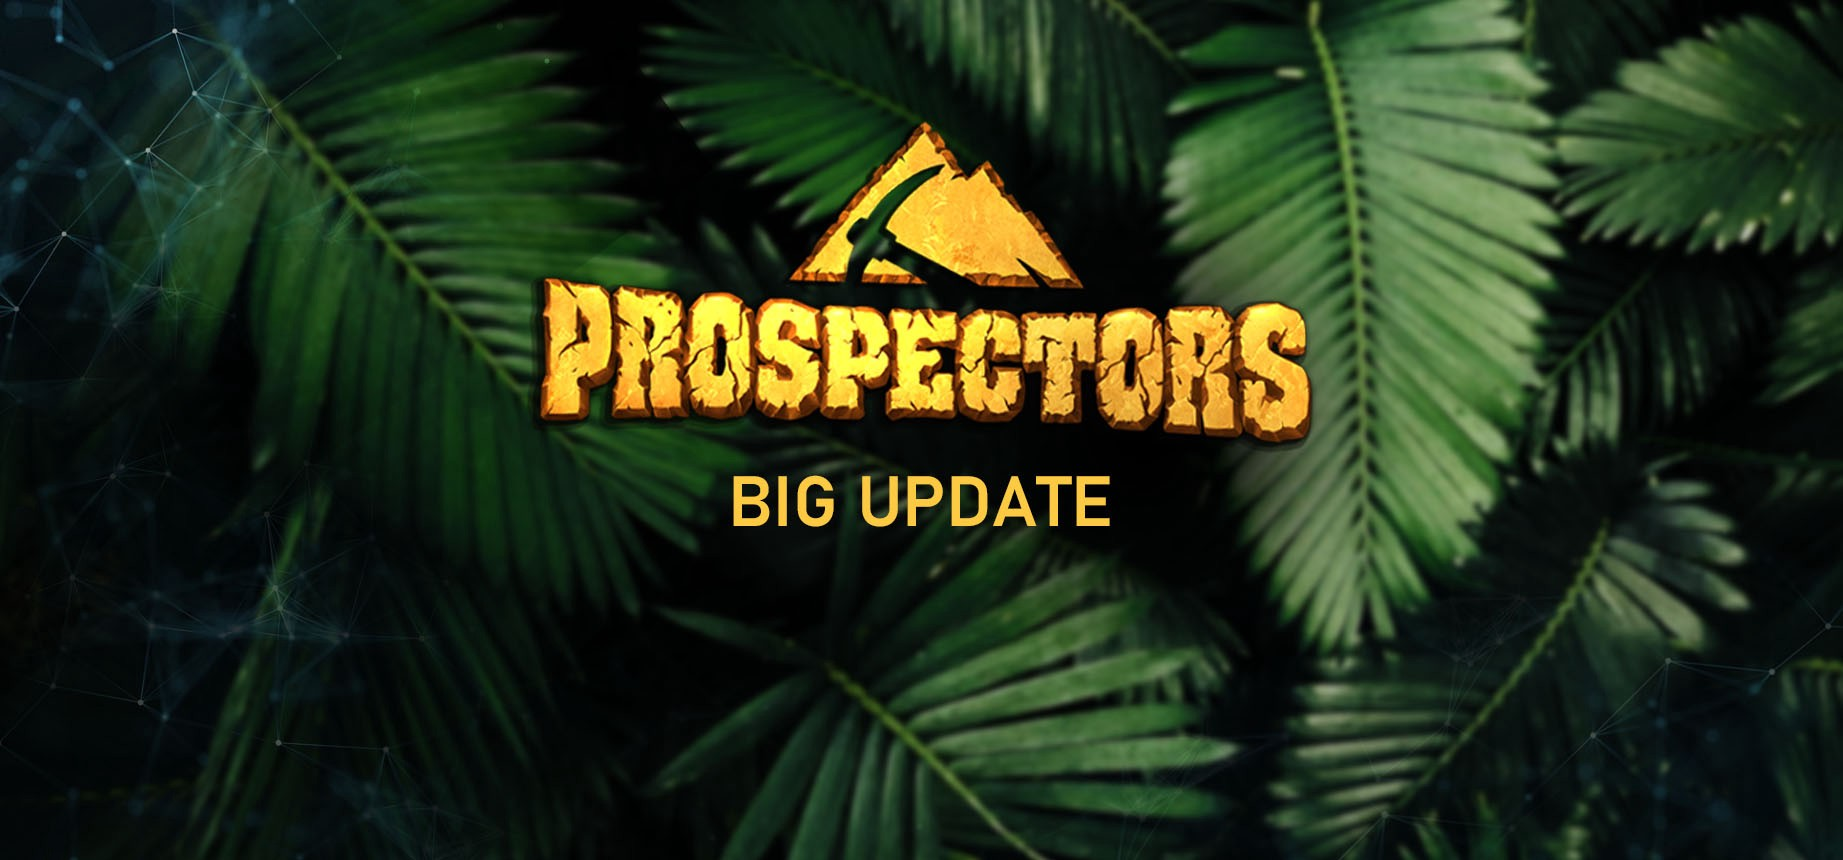 Prospectors announces open public testing of the Big Update's features on the Jungle EOS Testnet